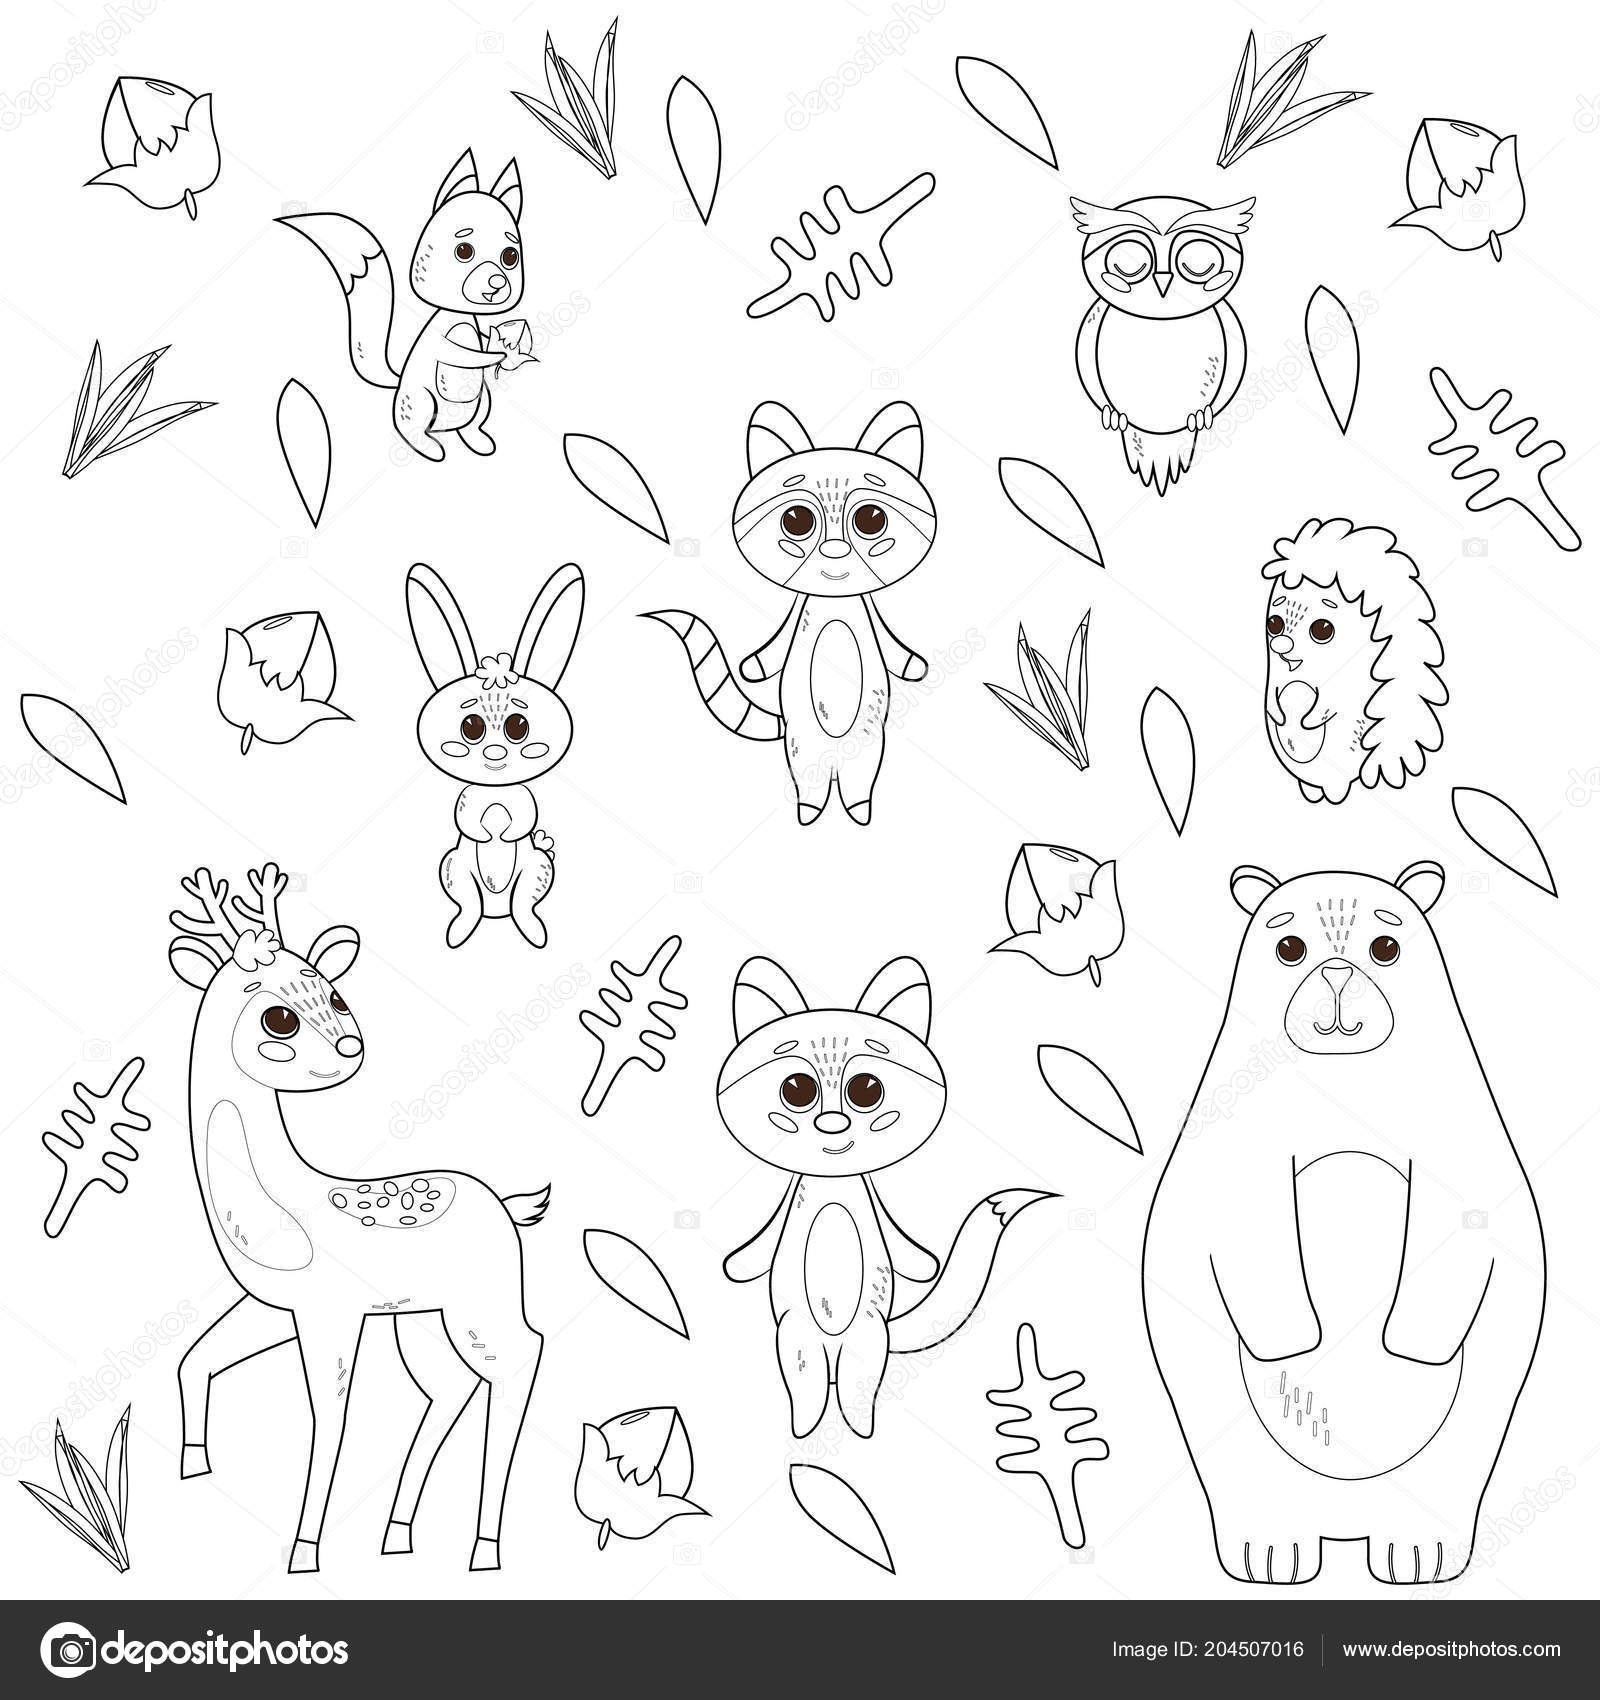 Https Cz Depositphotos Com 204507016 Stock Illustration Coloring Book With Cute Forest Html